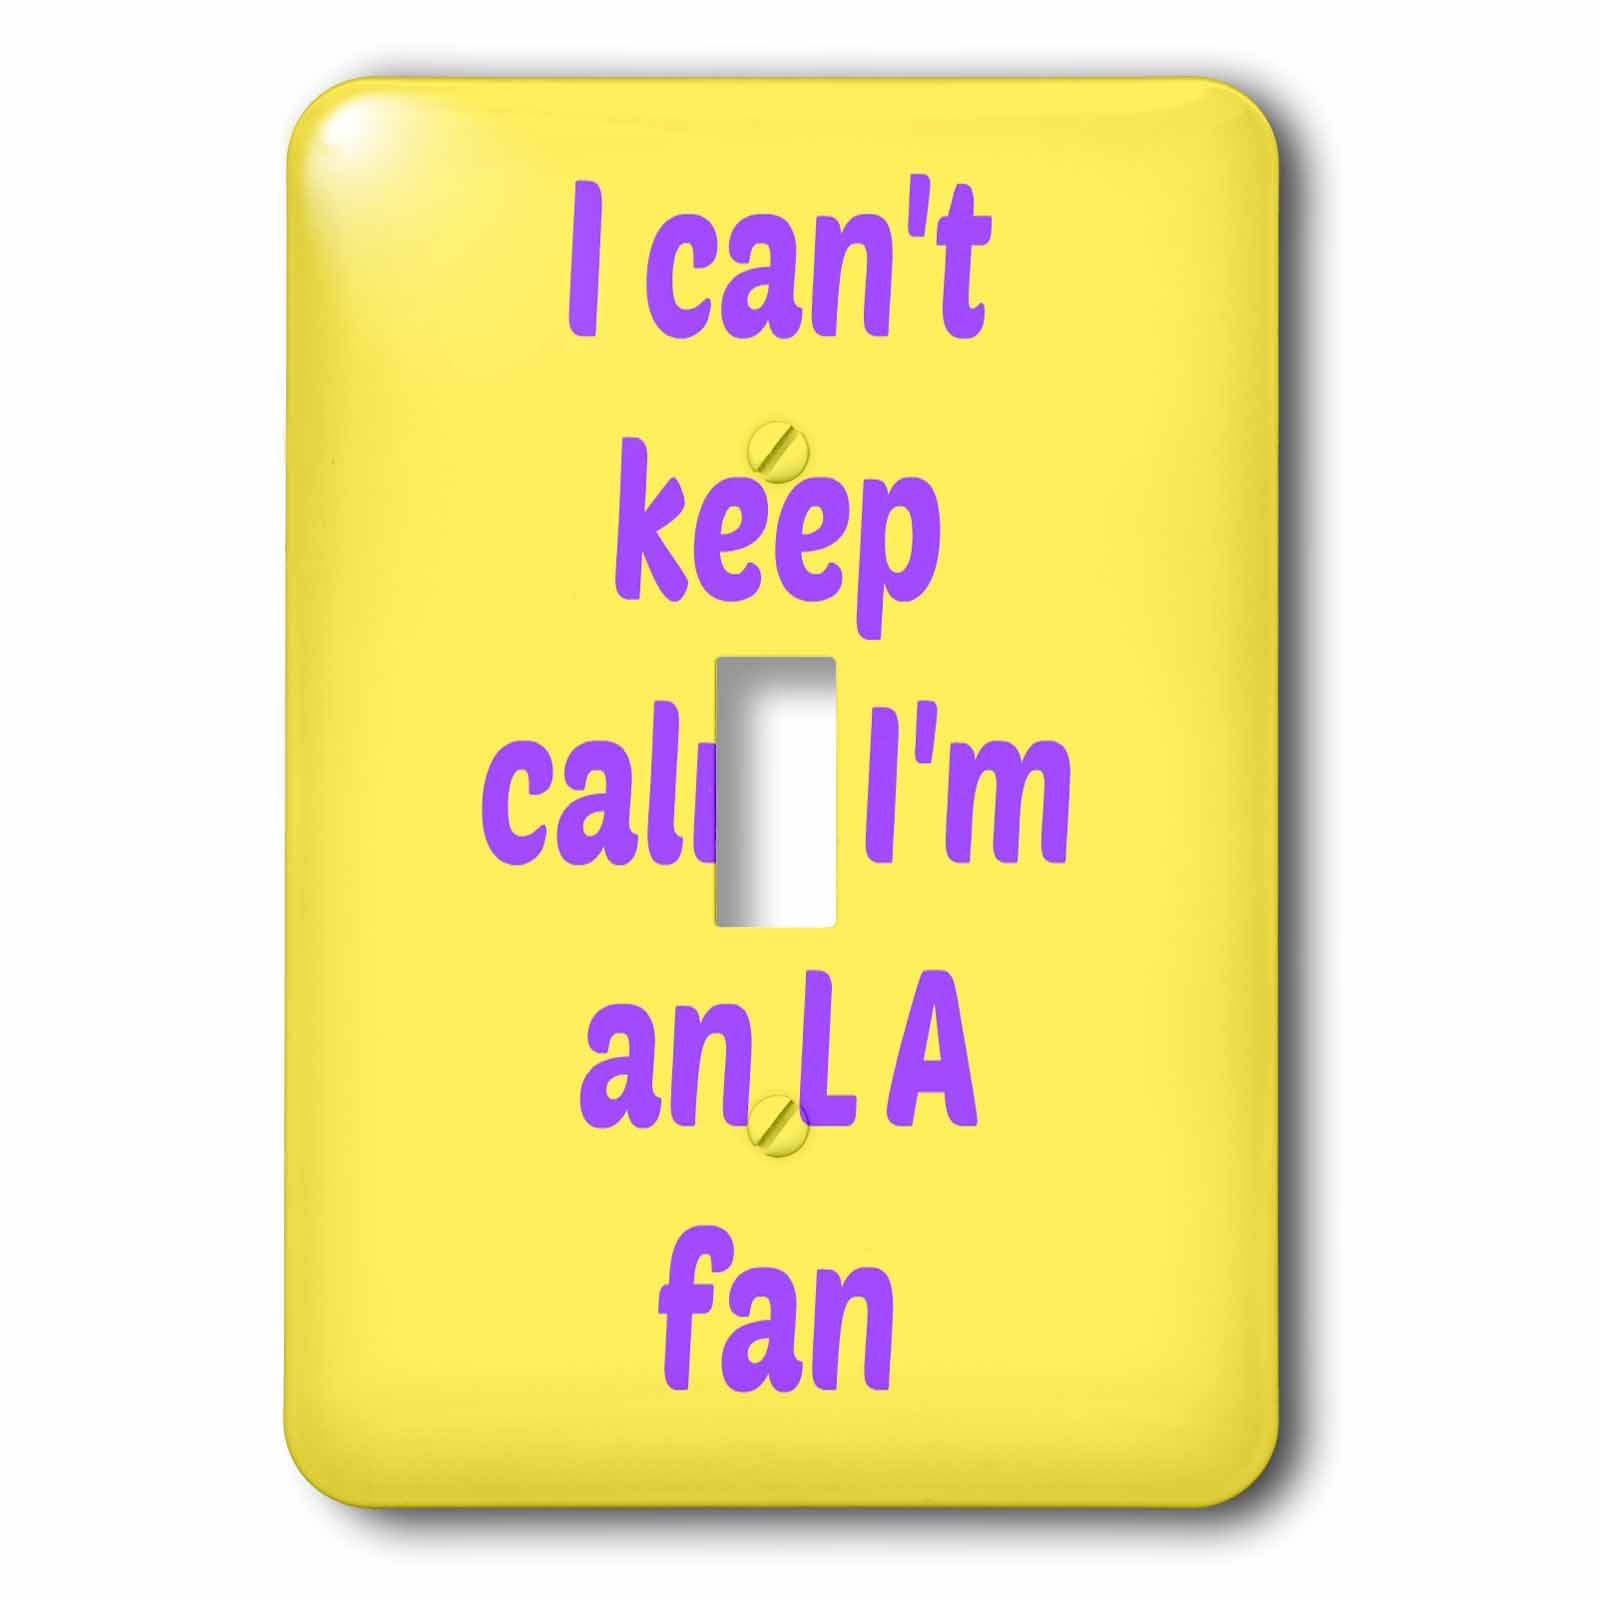 3dRose lsp_172867_1 I Cant Keep Calm Im an L a Fan, Purple, Yellow Light Switch Cover